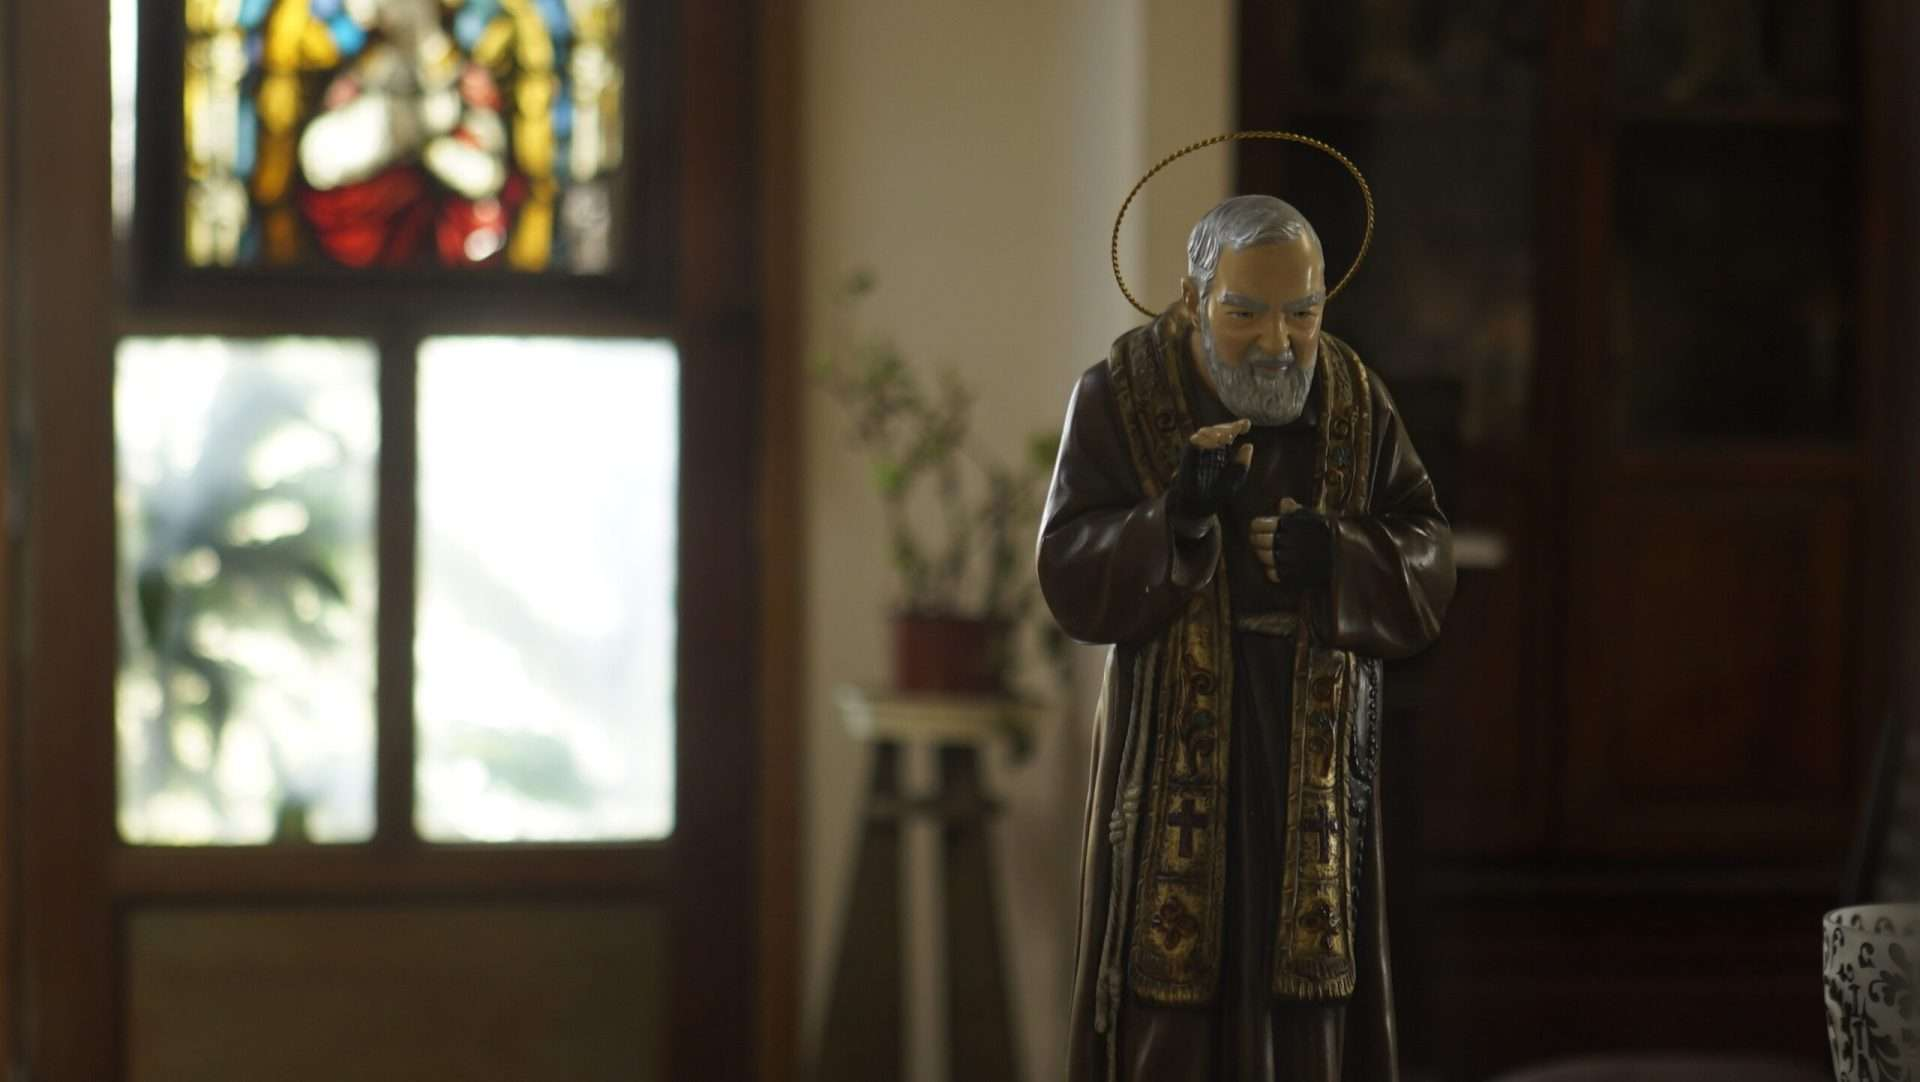 Did you know Padre Pio was nearly killed by the devil but Mary saved him?